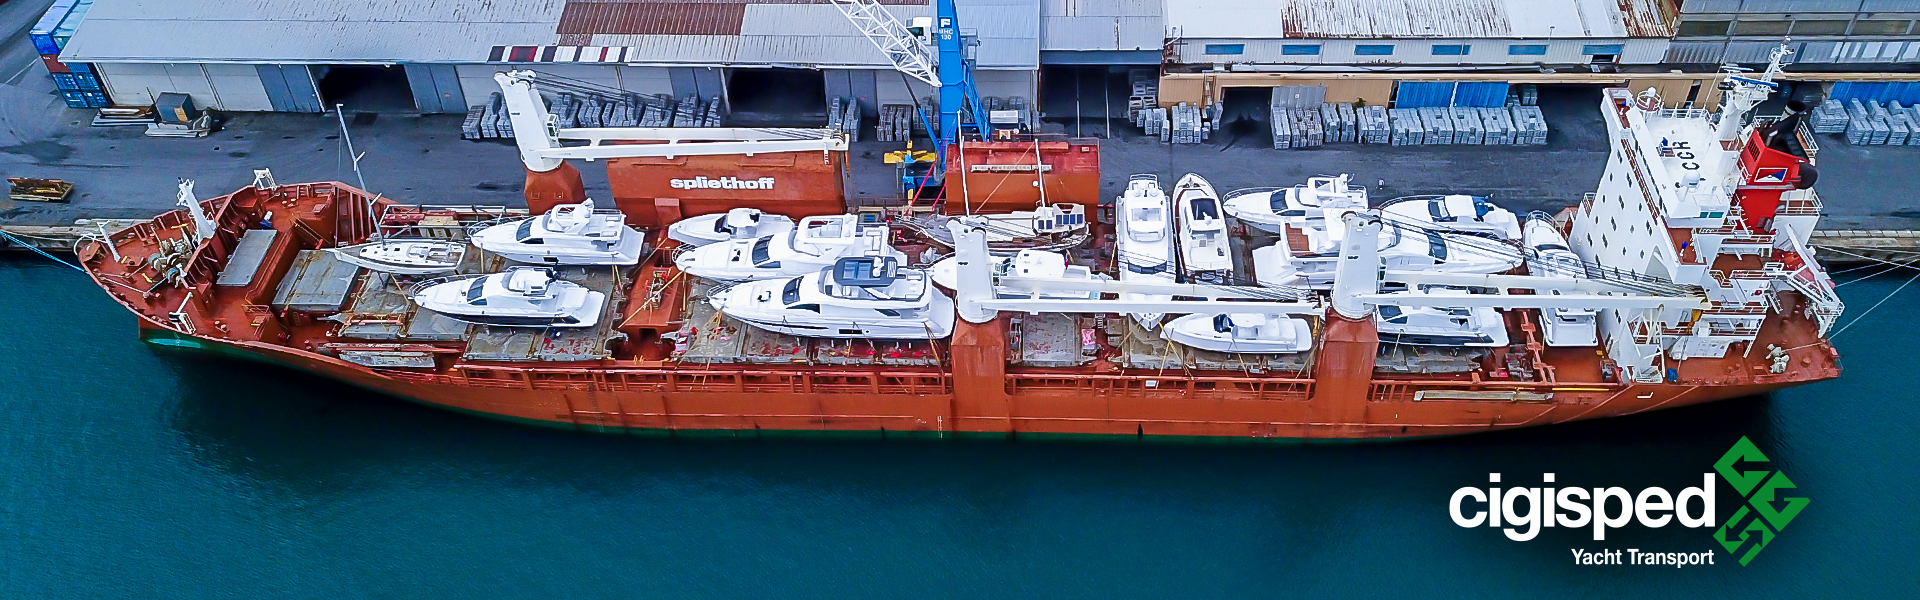 Yacht transport - Cigisped is a leading company in the yacht transport by sea, boat transport and yacht shipping